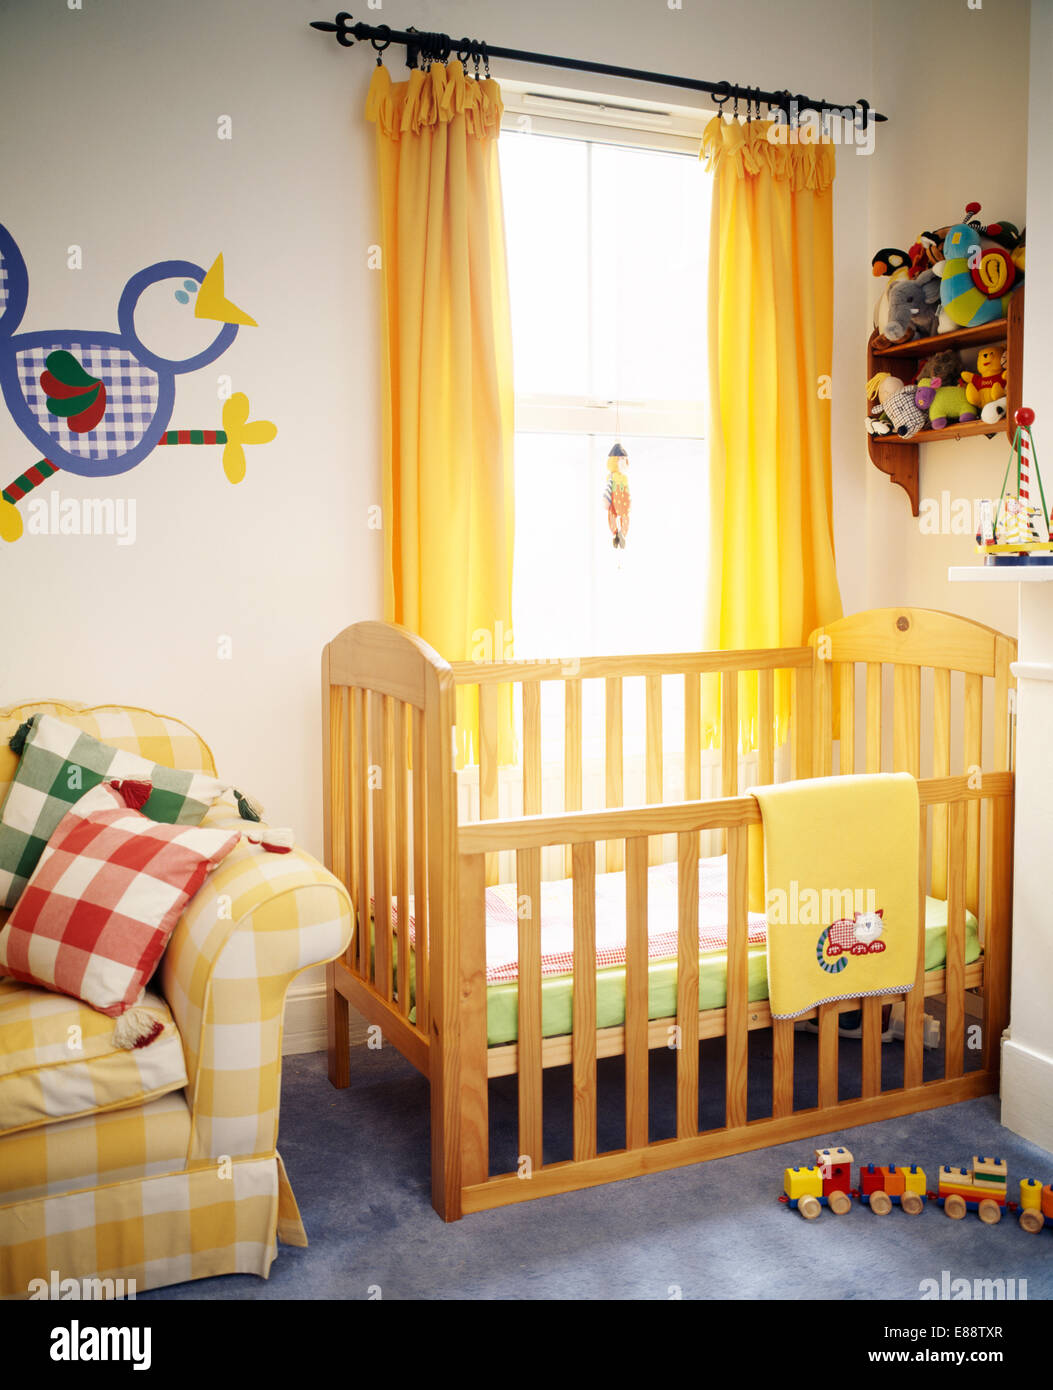 Wooden crib for sale in cebu - Baby S Wooden Cot In Front Of Window With Yellow Curtains In Nursery Bedroom Stock Image